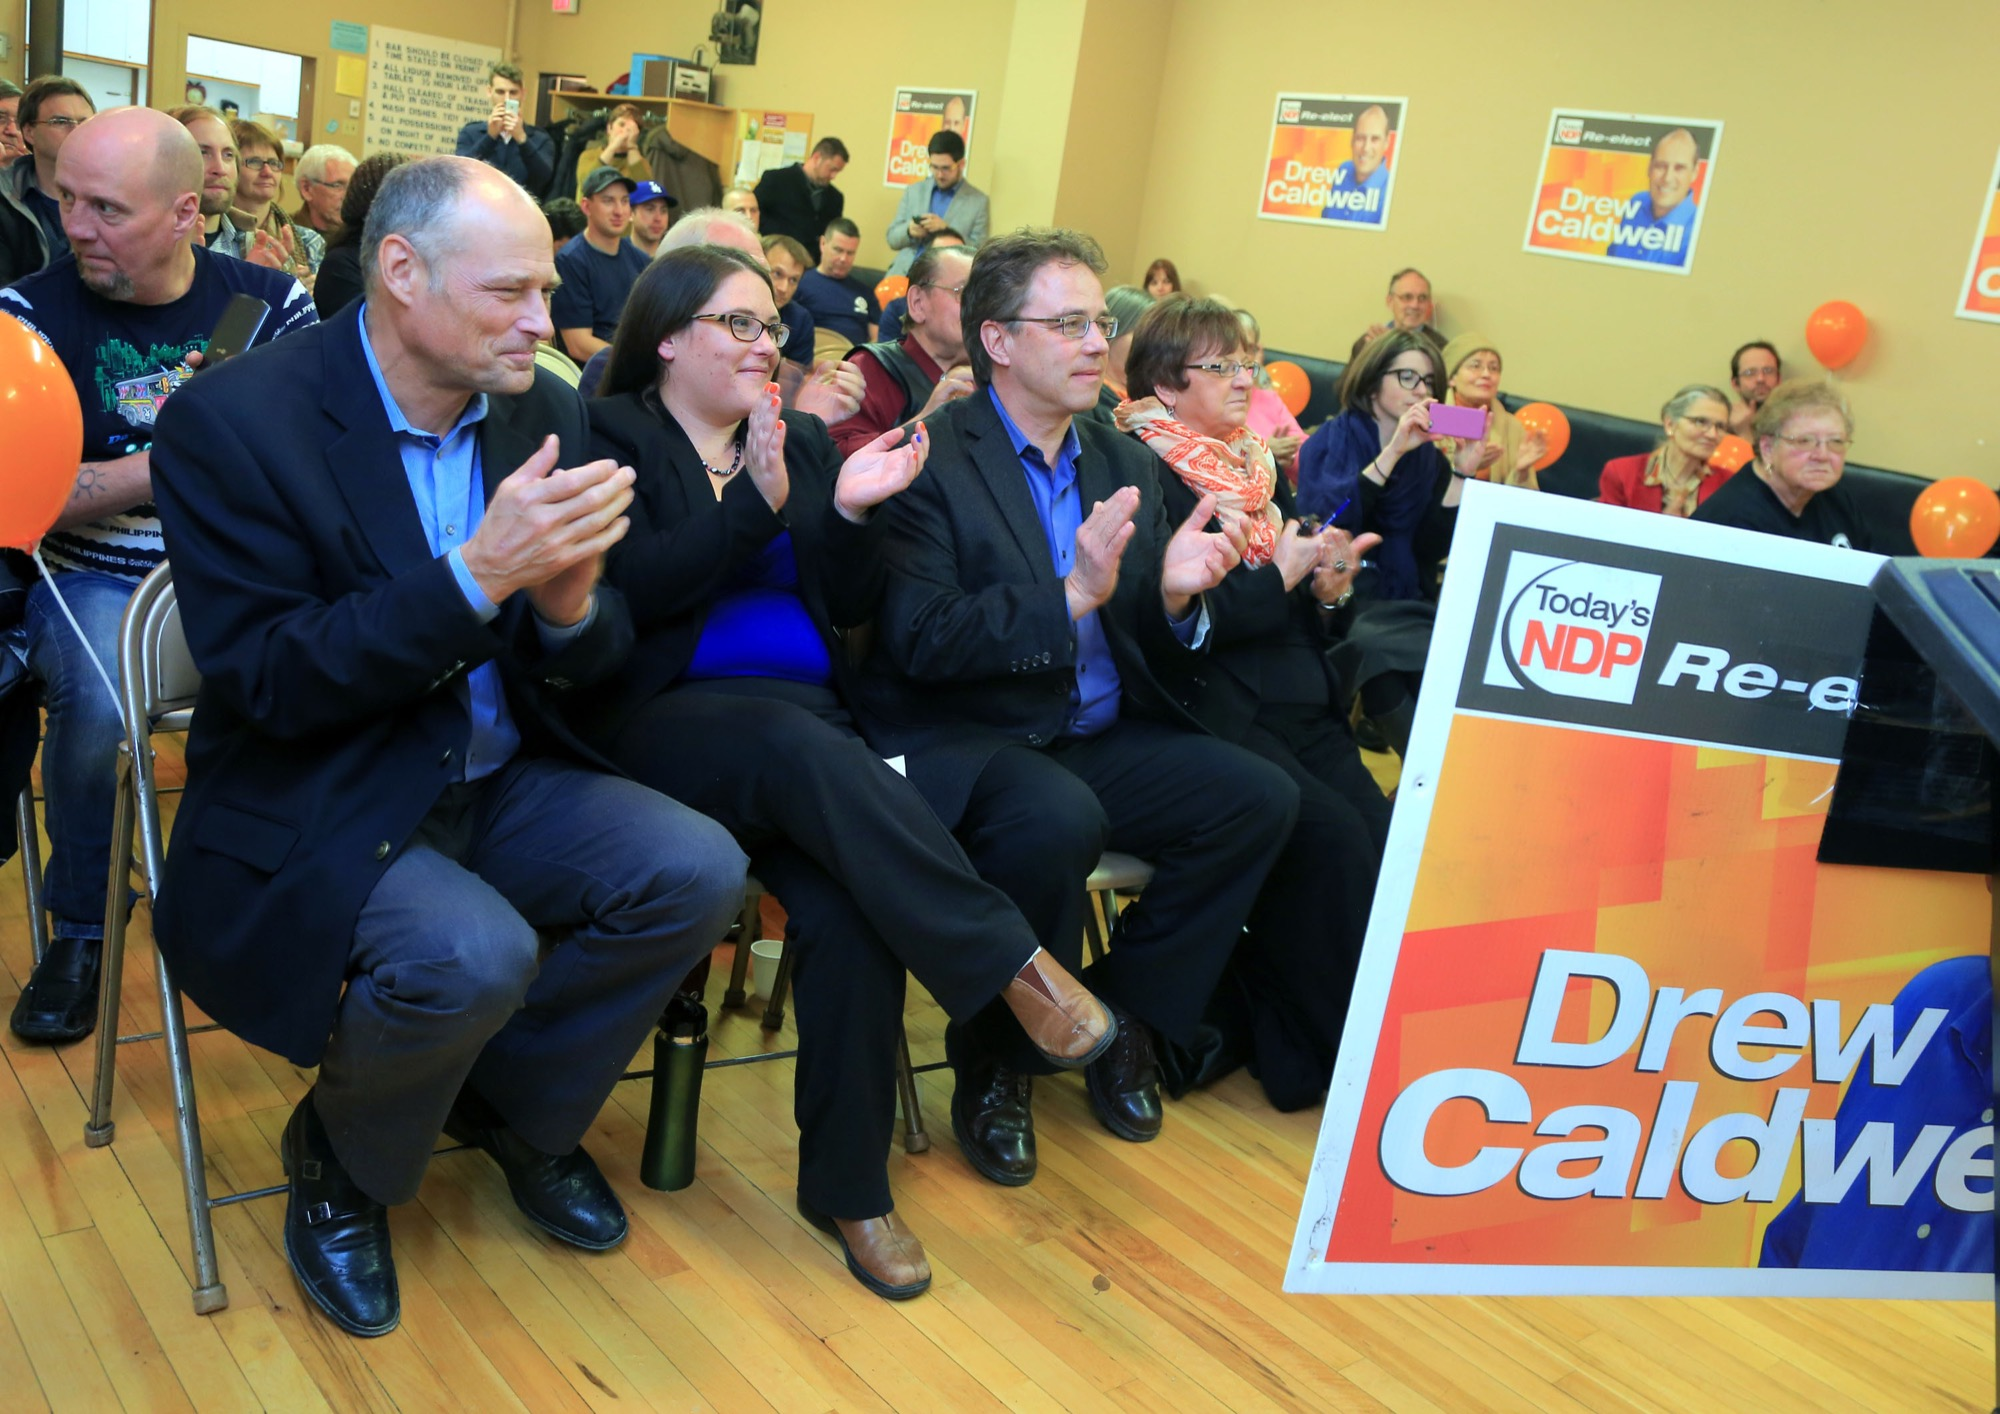 Caldwell, Lonnie Patterson and Interlake MLA Tom Nevakshonoff applaud during Caldwell's nomination meeting in 2016. Patterson praised NDP Leader Wab Kinew's decision to appoint a female-led commission to investigate the allegations against Struthers and to make recommendations on policy changes as a step in the right direction.